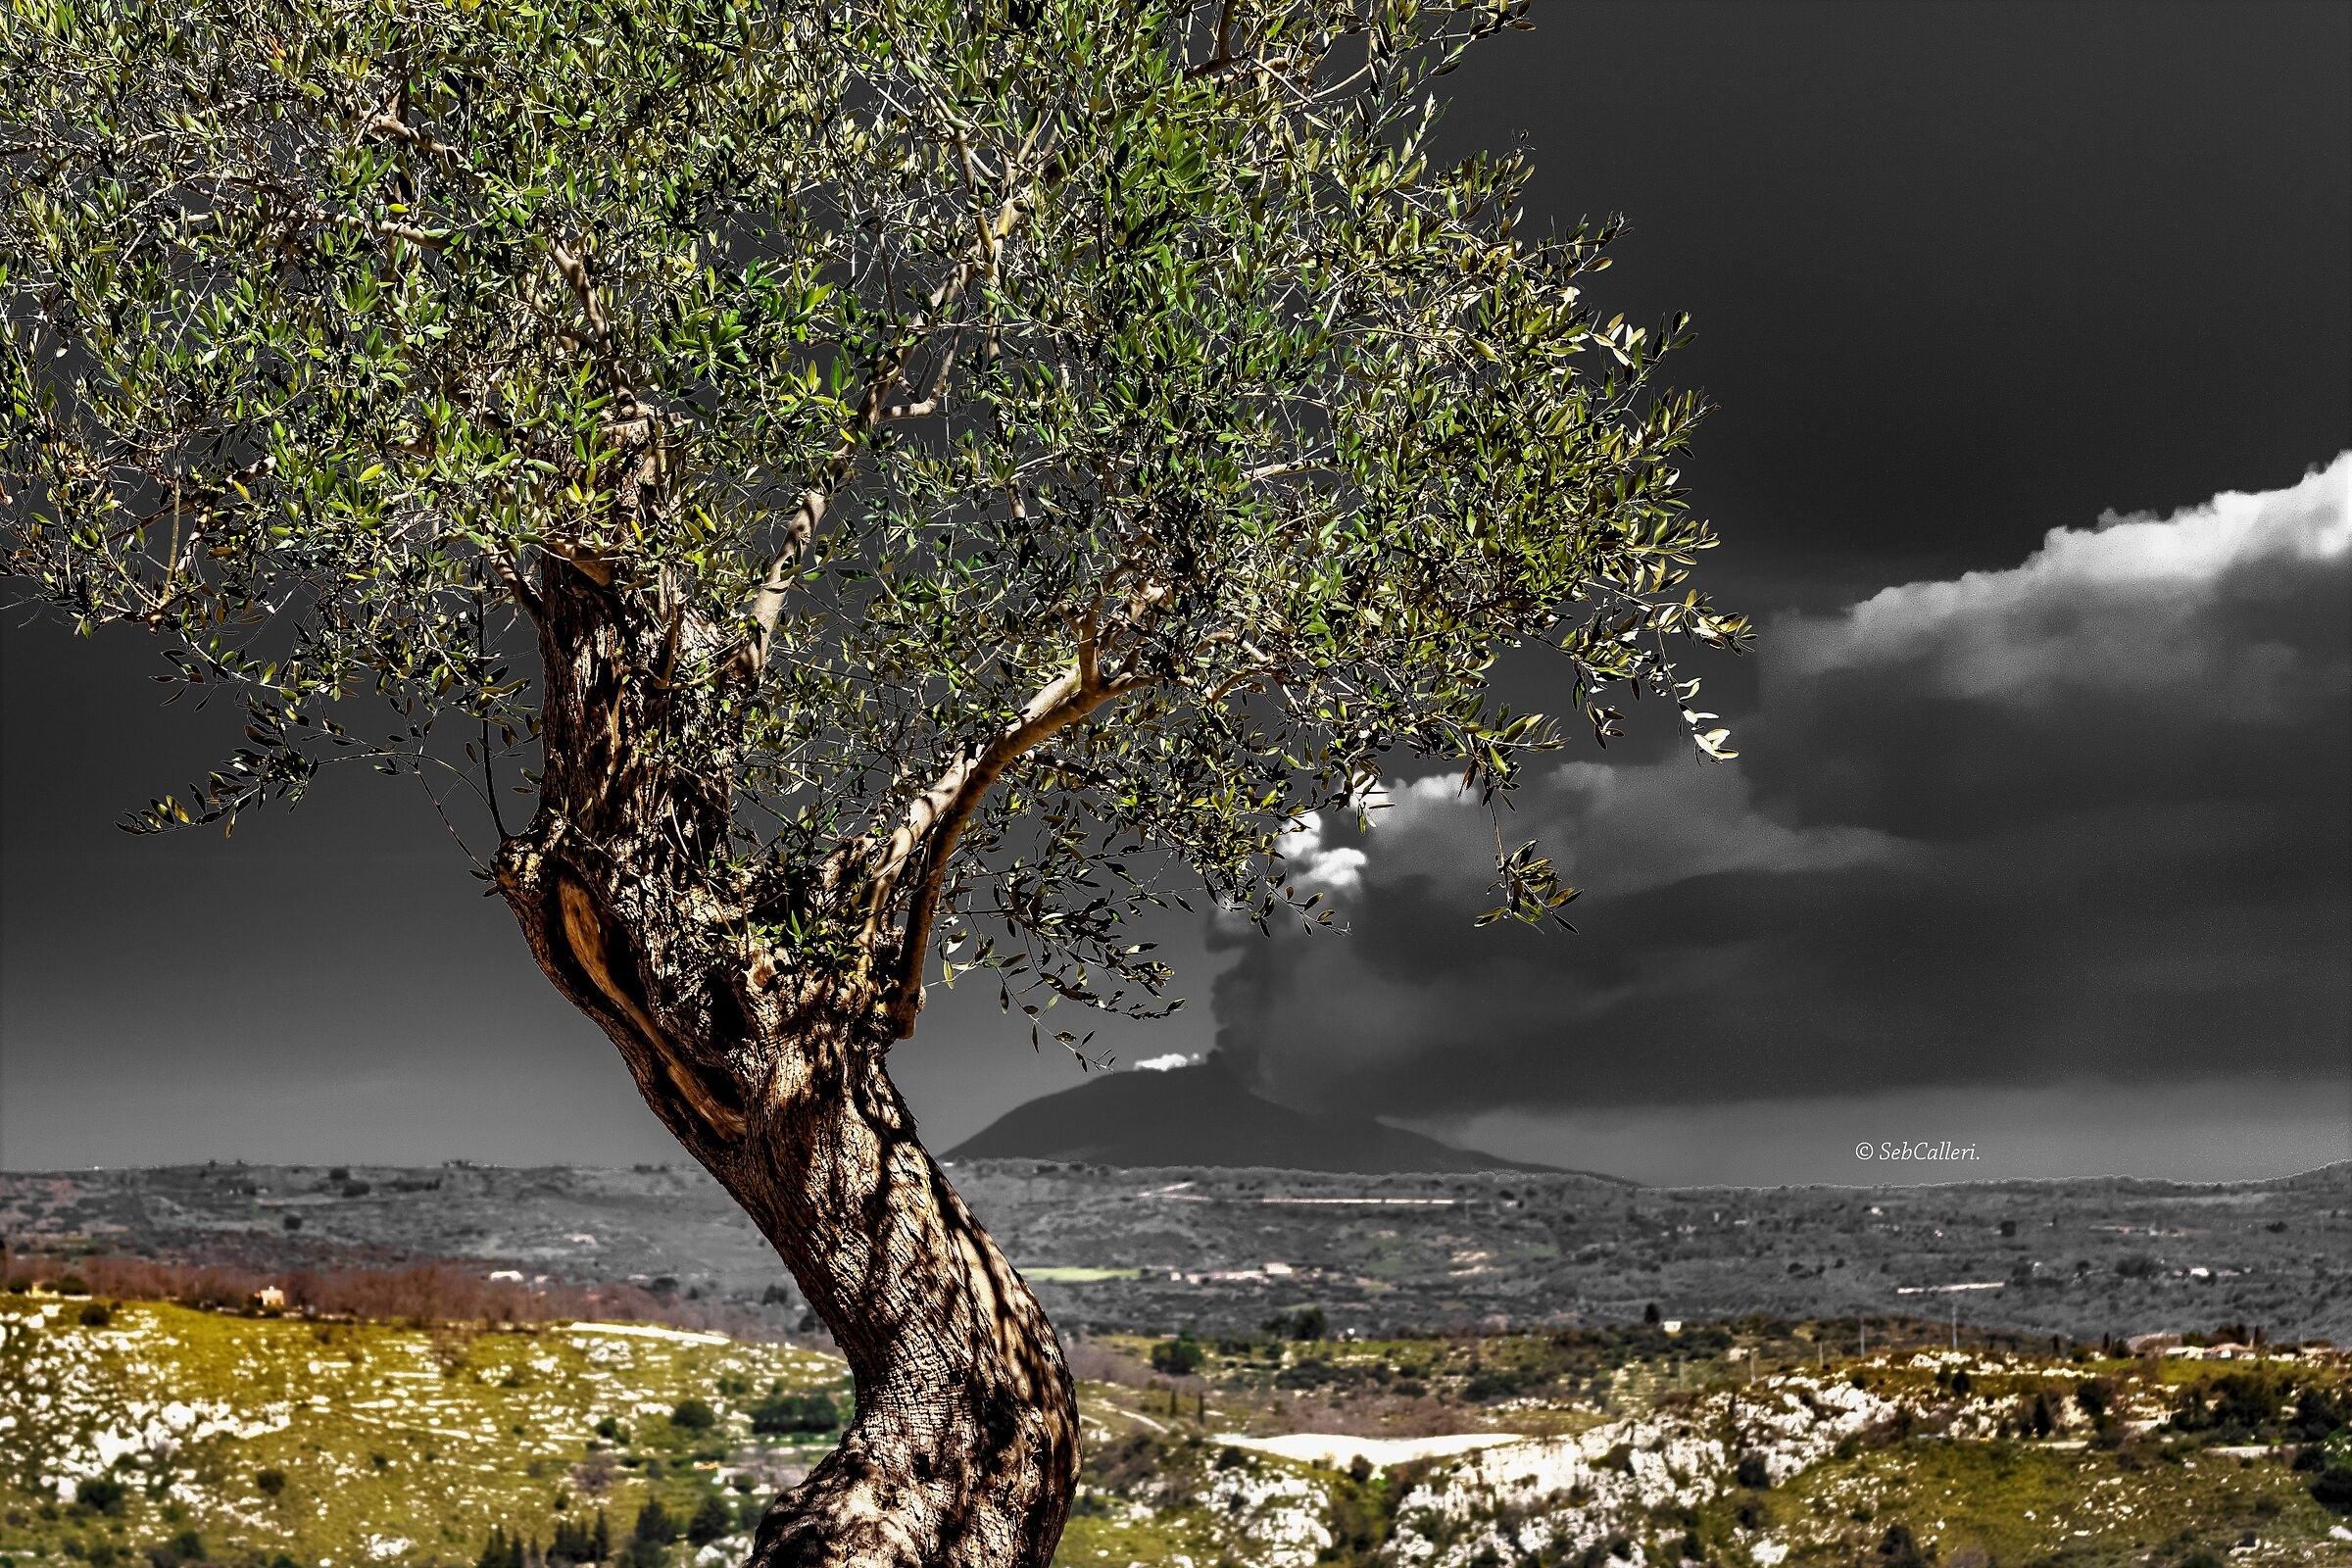 The olive tree of peace and the roar of the Giant......